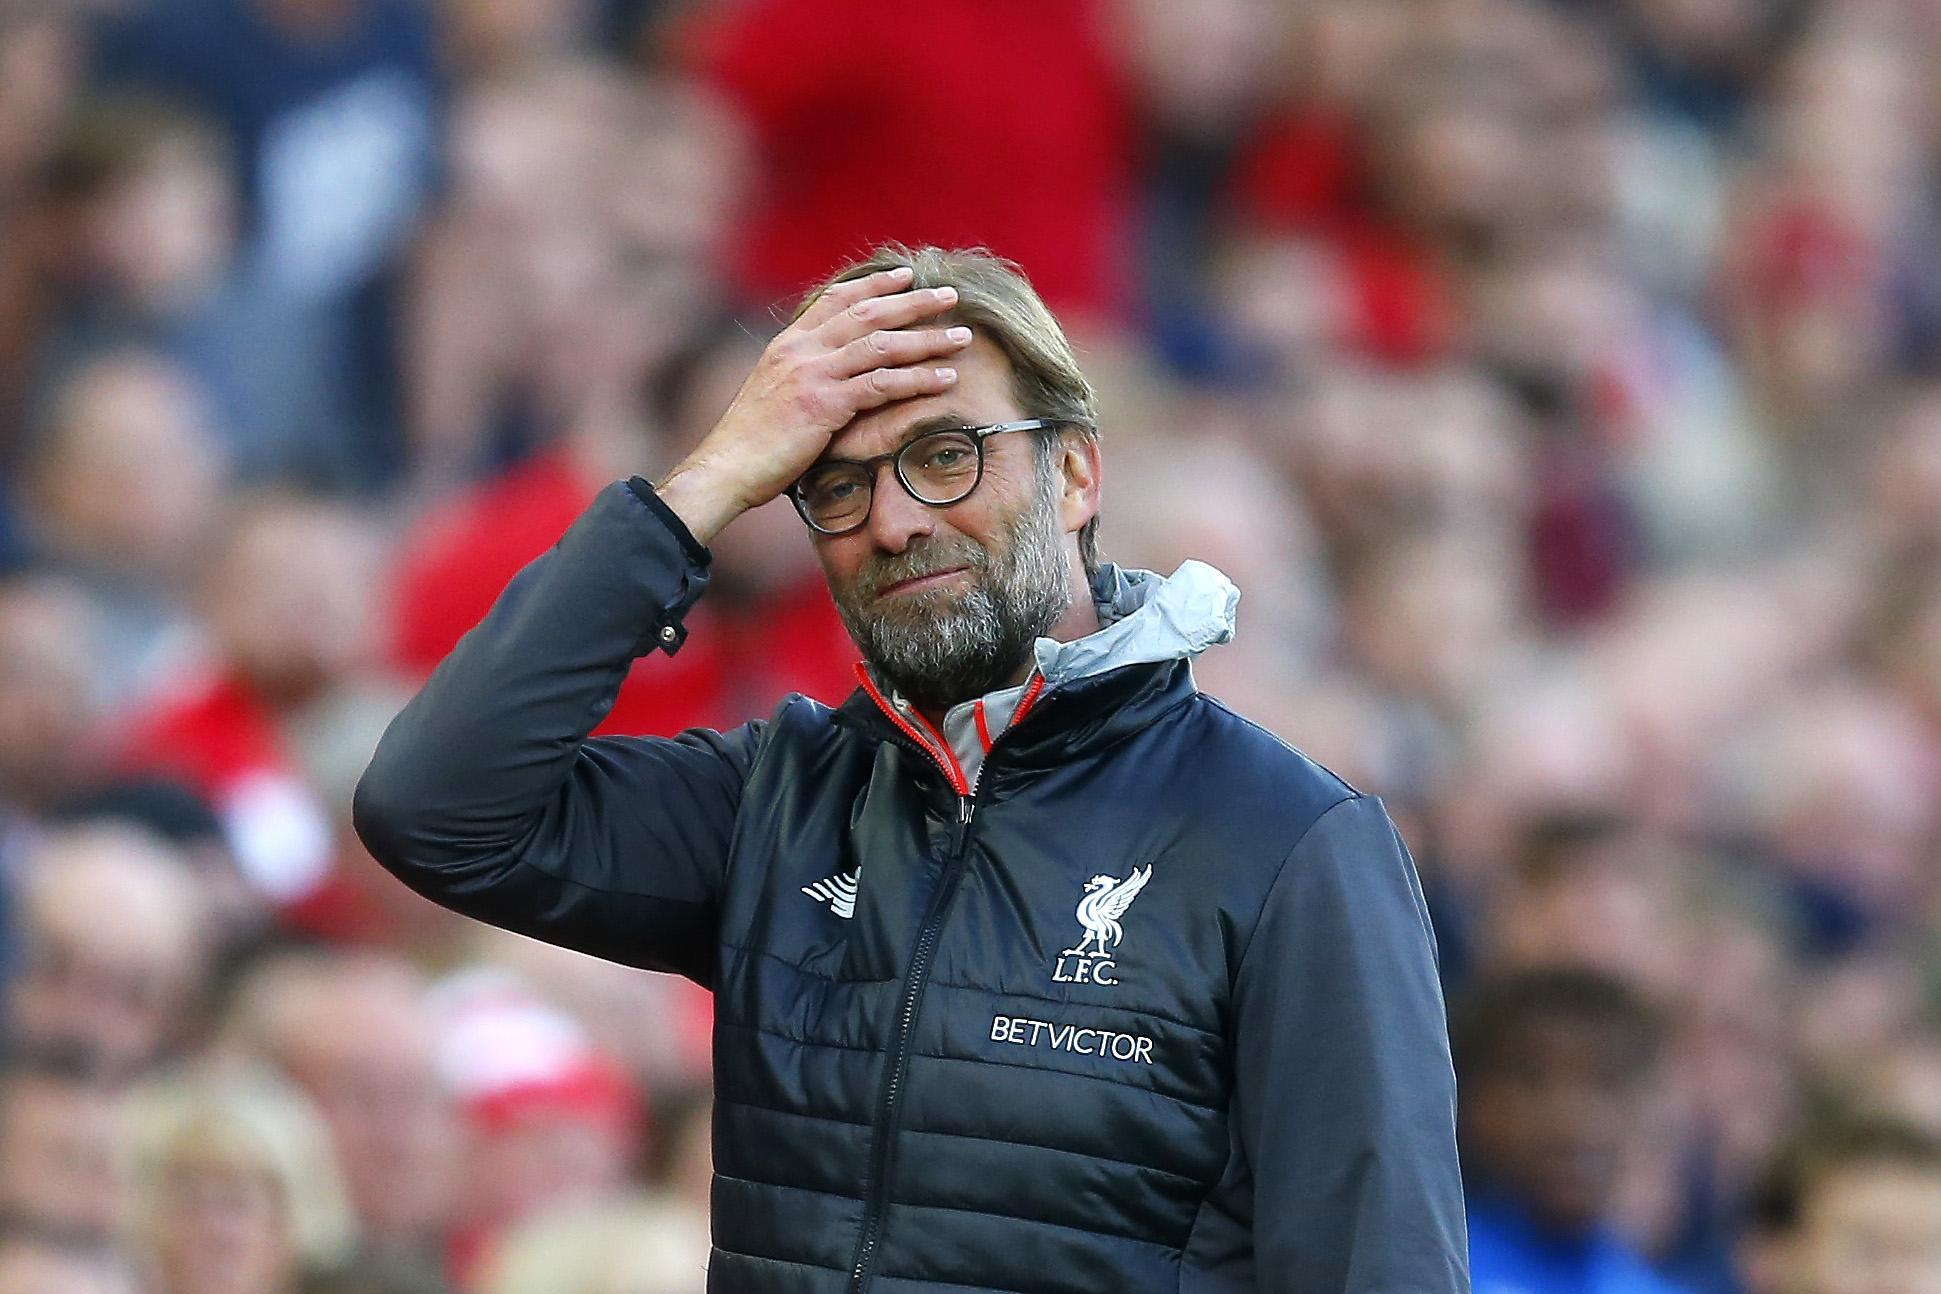 Klopp insists he is the man to lead Liverpool to the Prem title despite blip in form